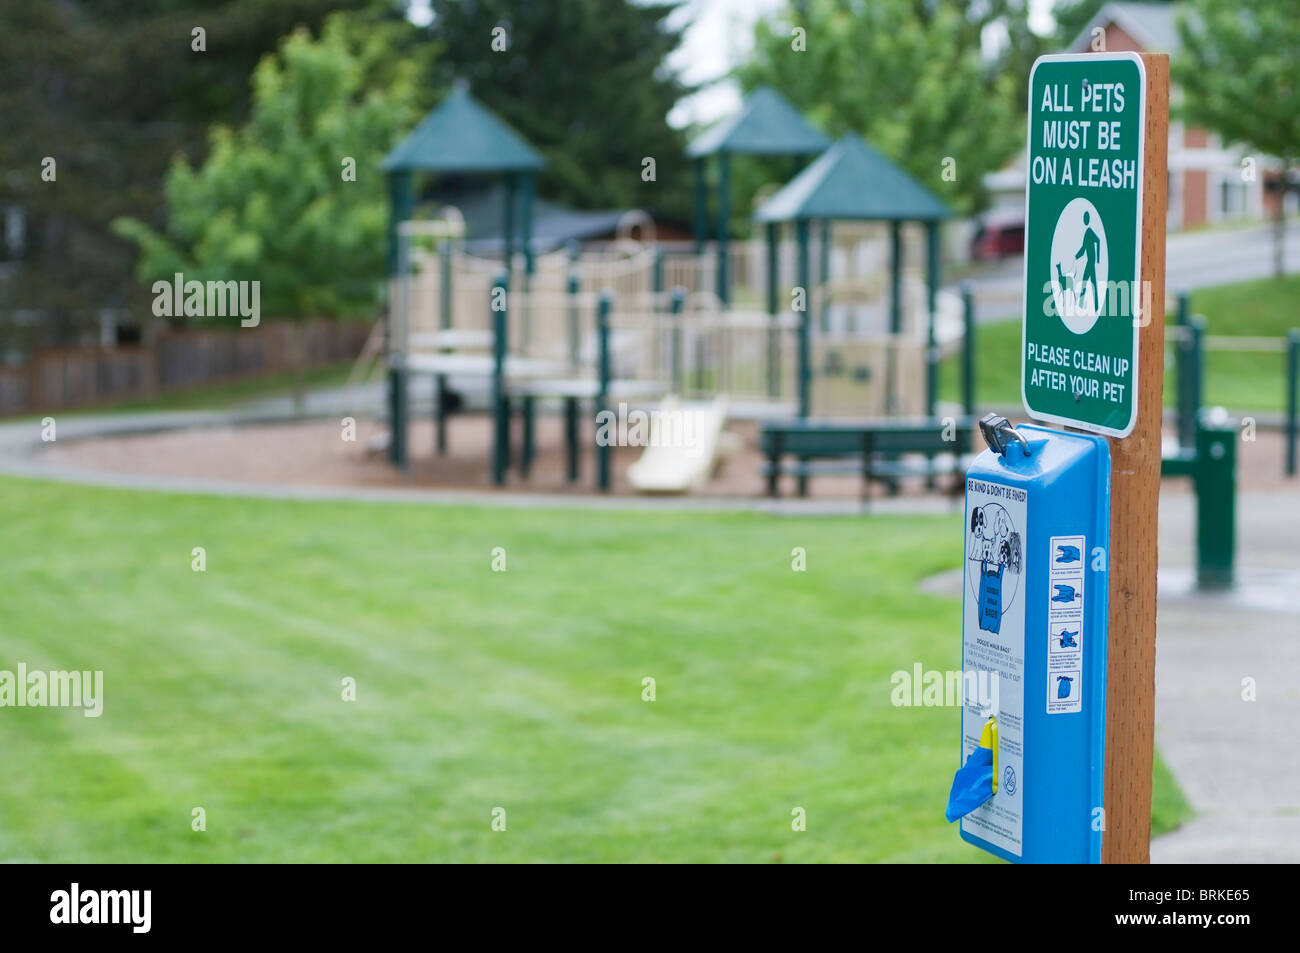 Bags are provided for responsible pet owners to keep the park clean. - Stock Image